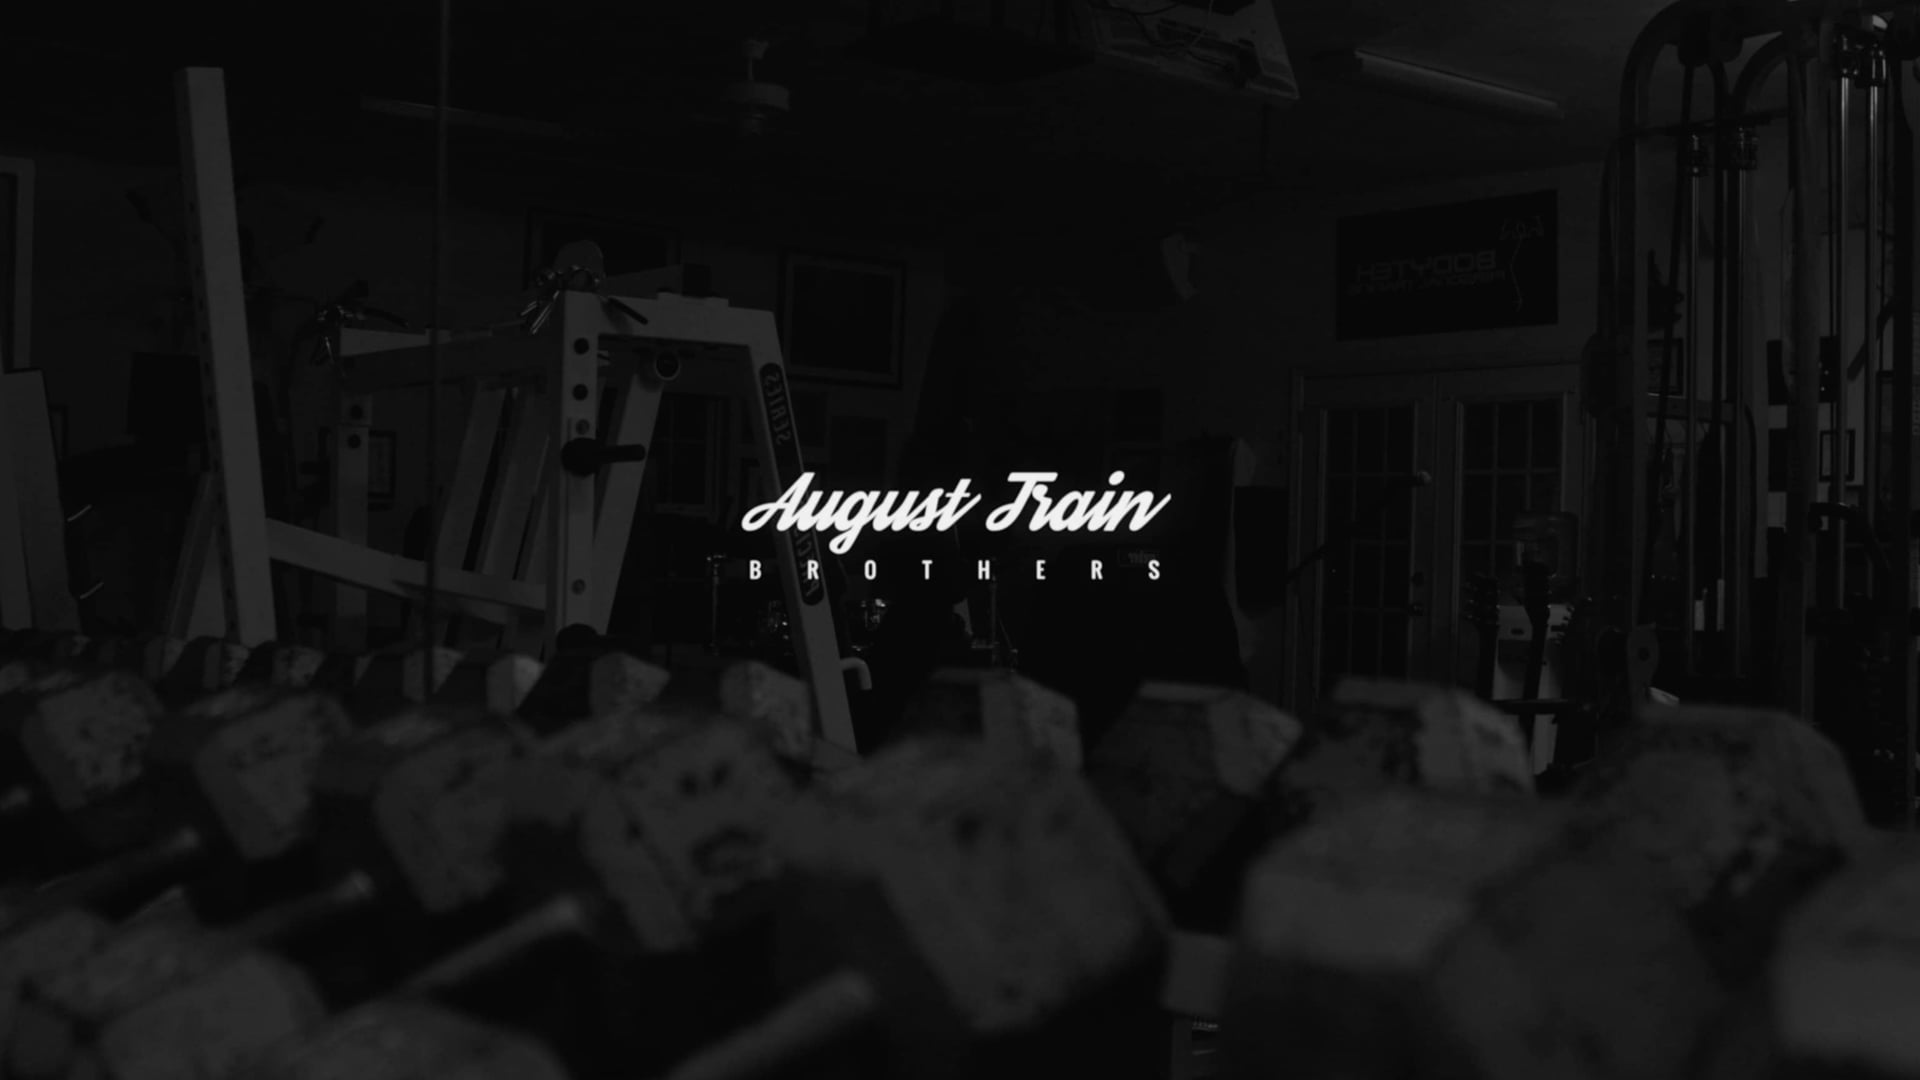 """Brothers """"August Train"""""""